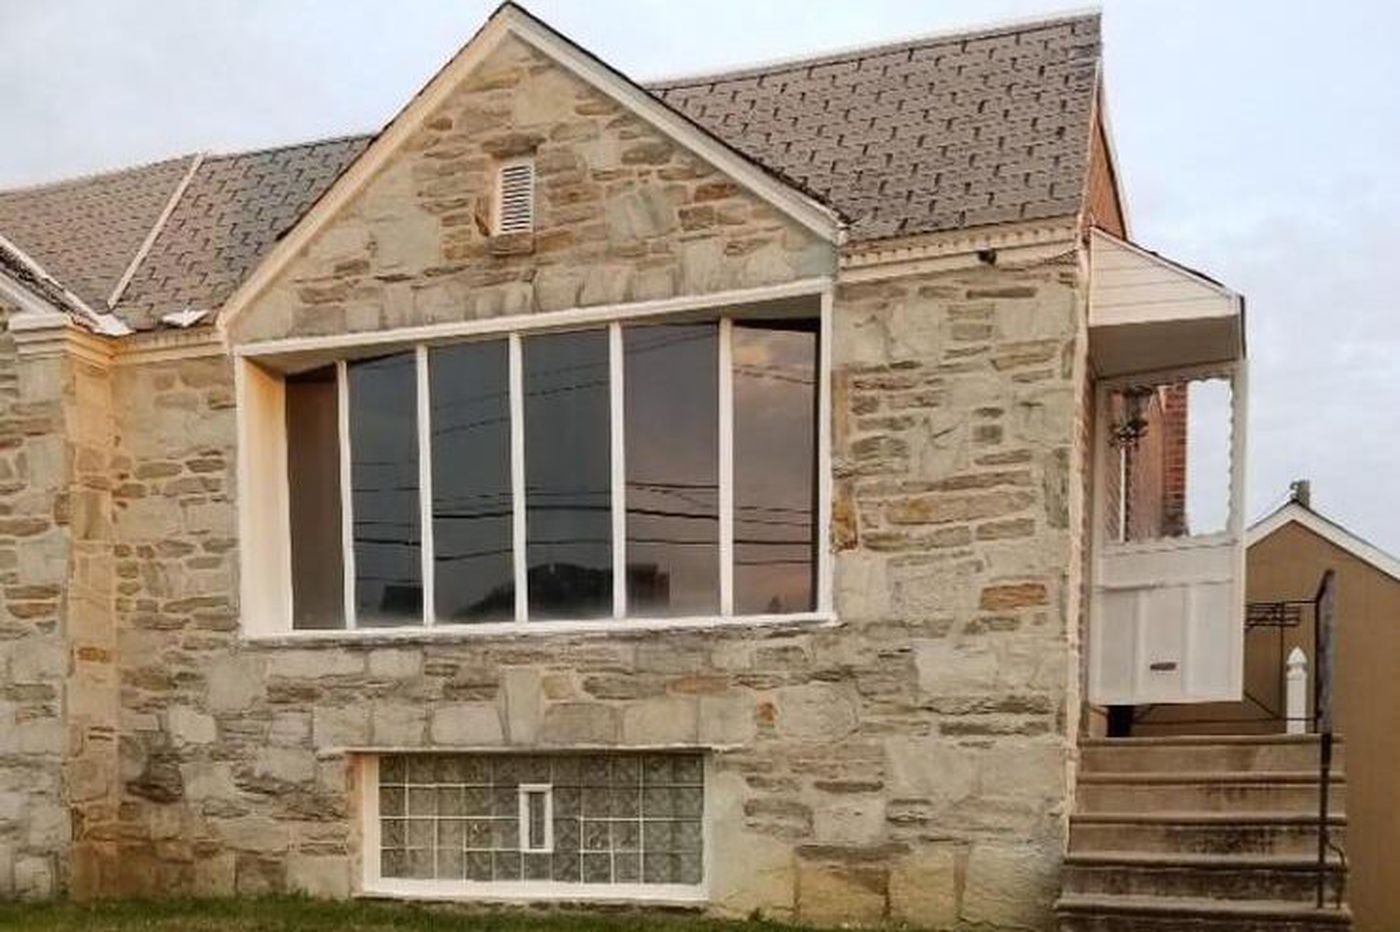 Philadelphia real estate: What you can buy for $250,000